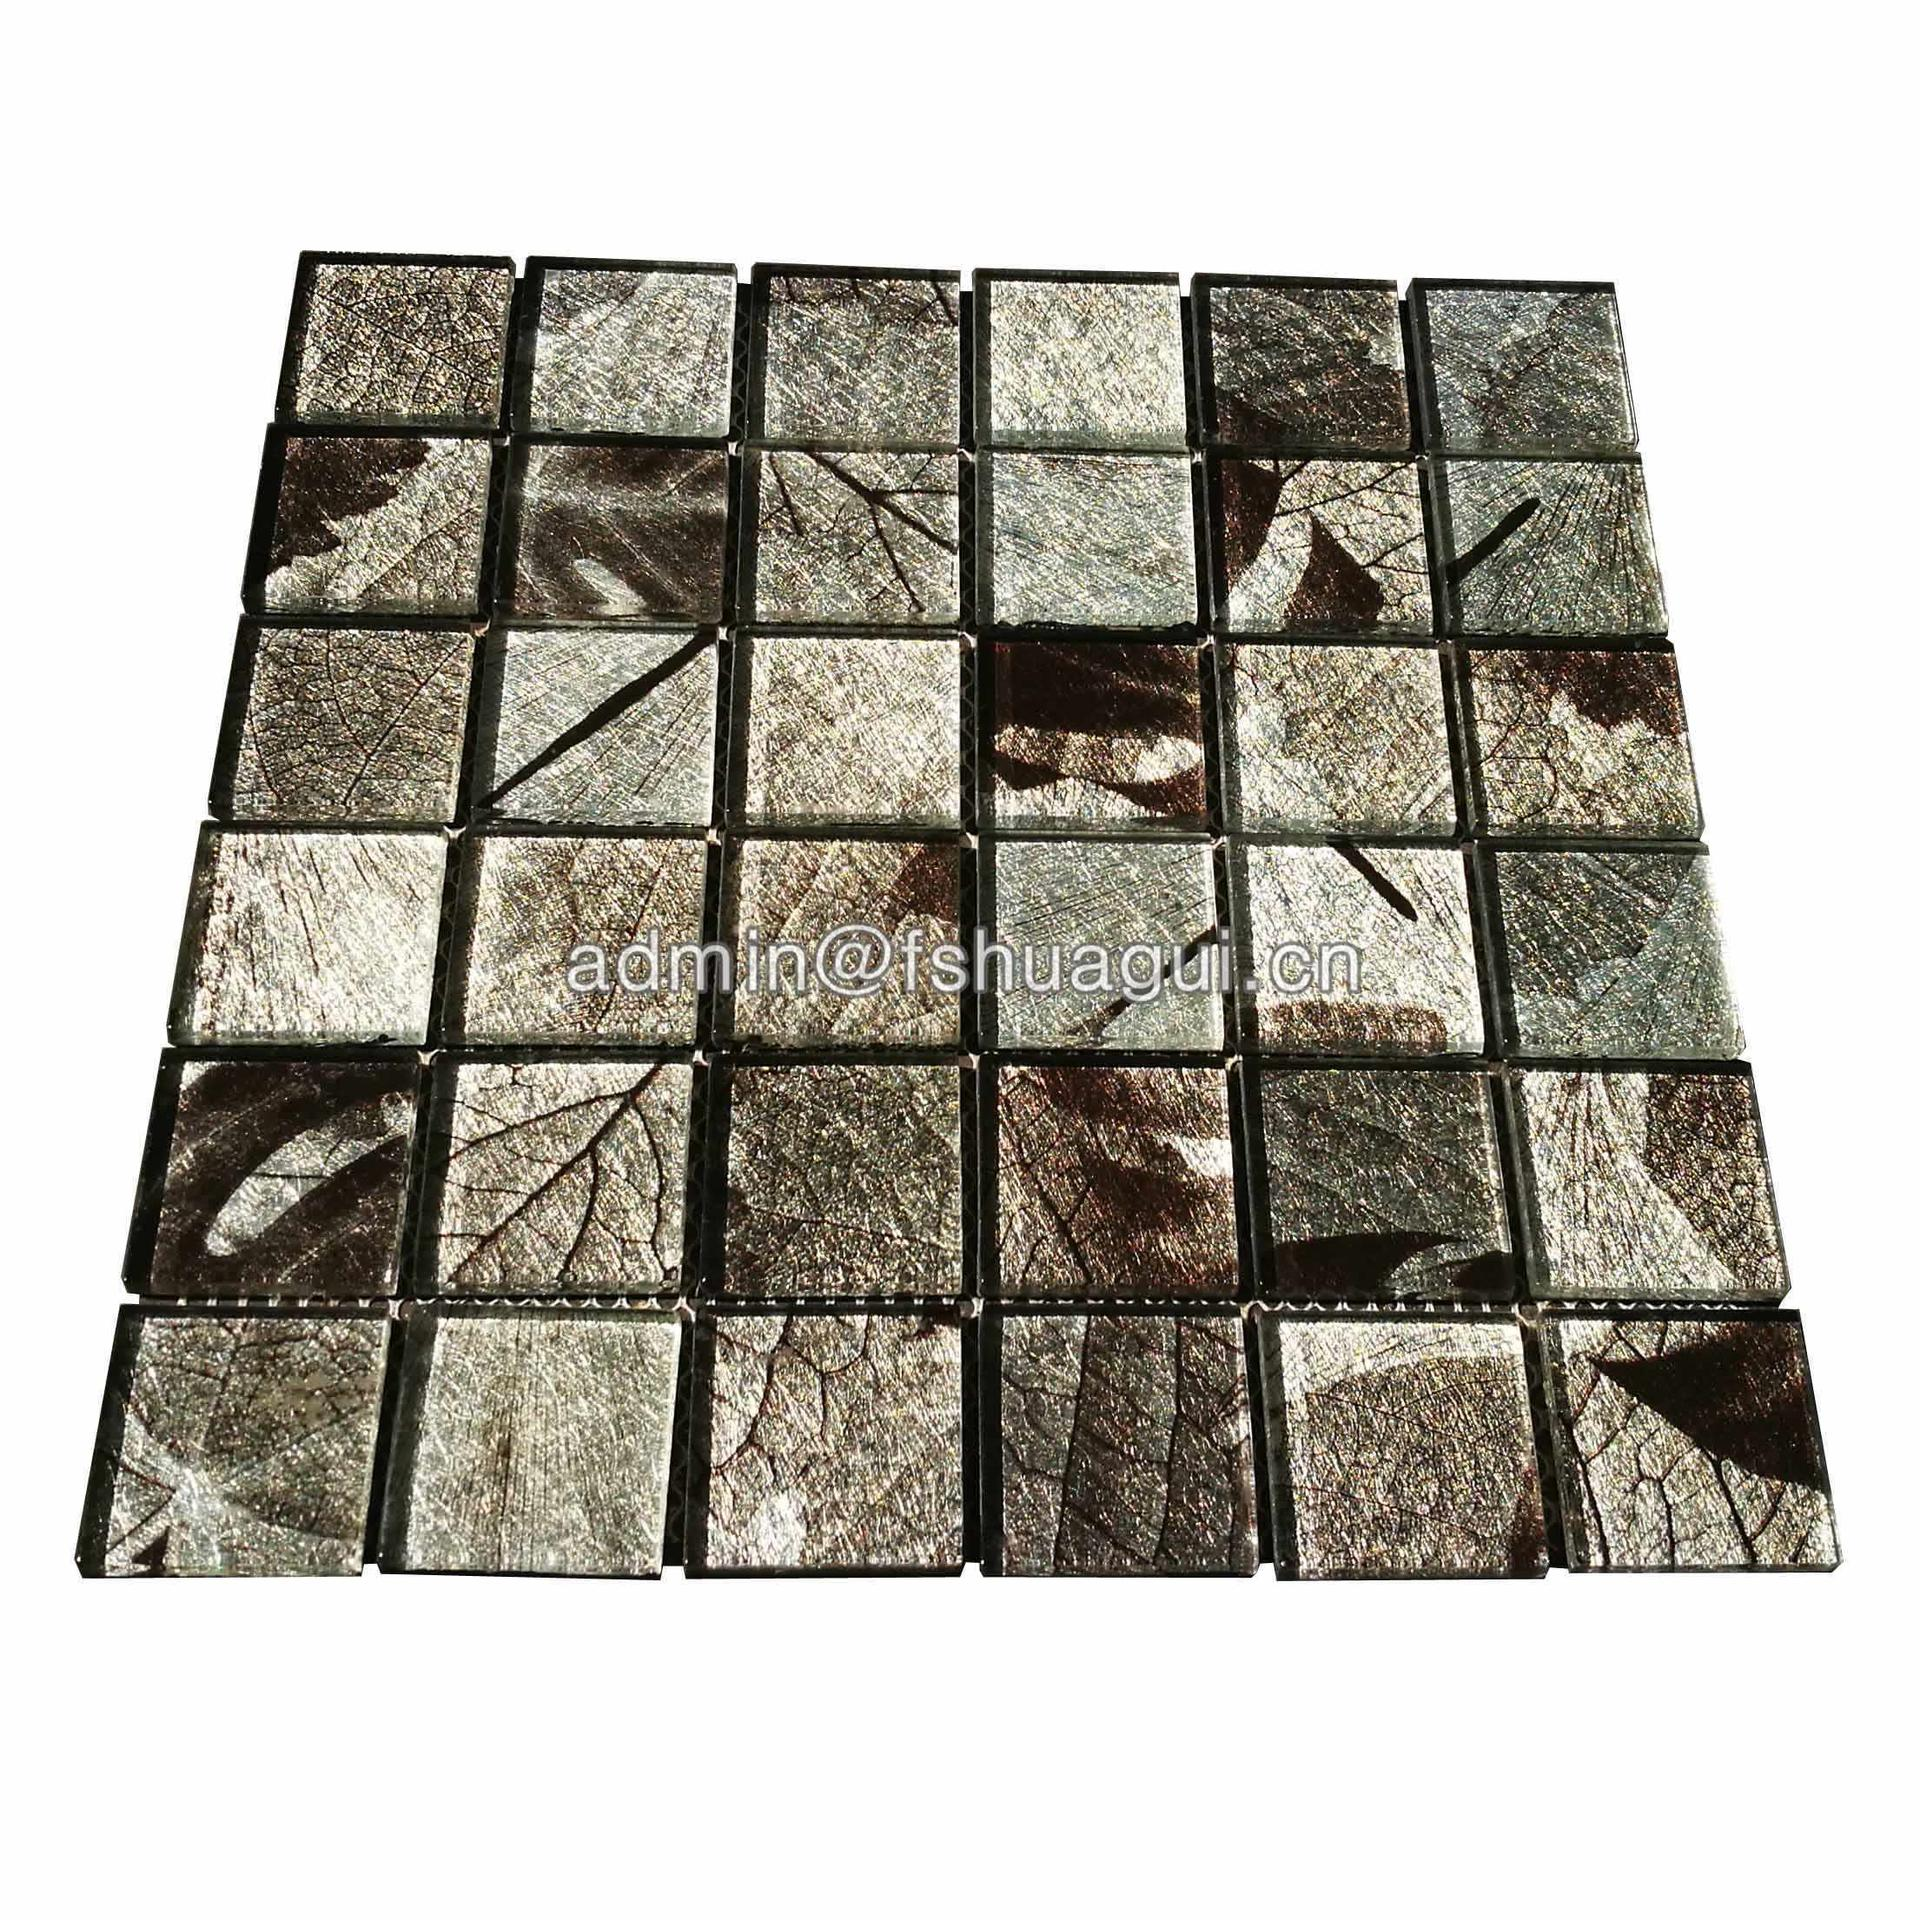 Gold Foil Crystal Glass Mosaic Gray Leaf Texture Glass Tiles